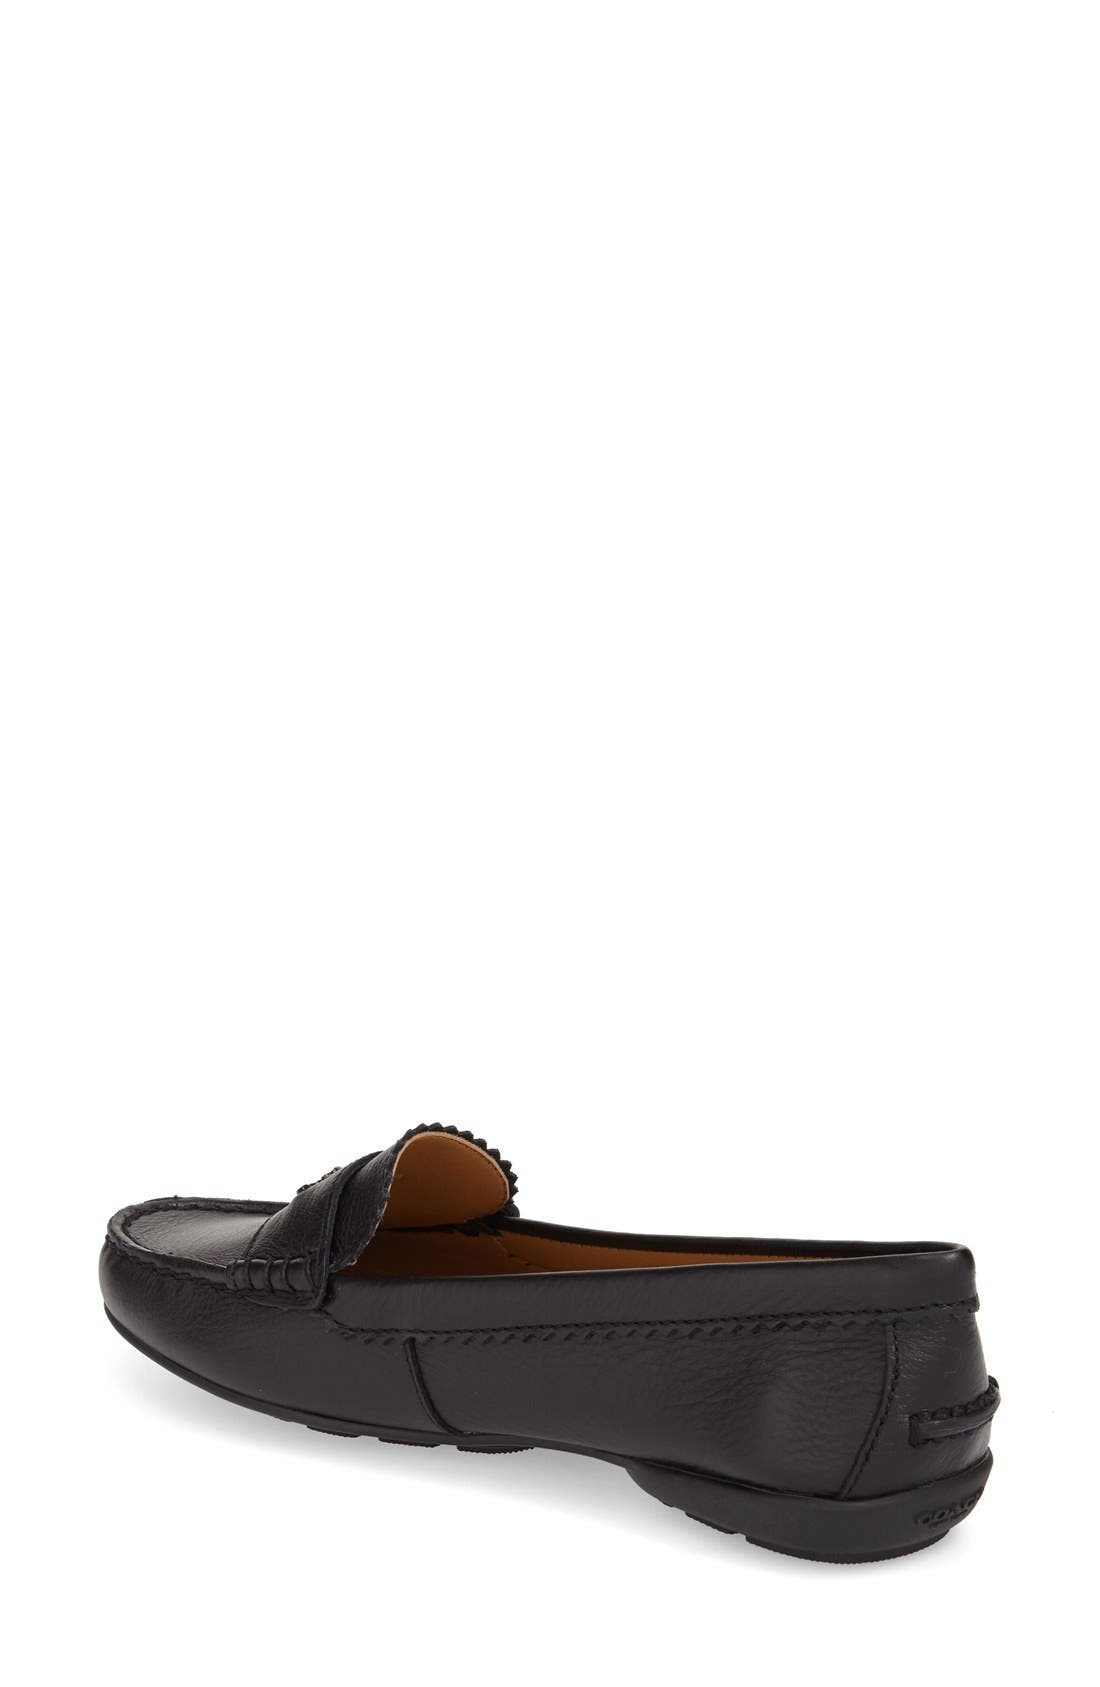 Alternate Image 2  - COACH 'Odette' Moccasin Loafer (Women)